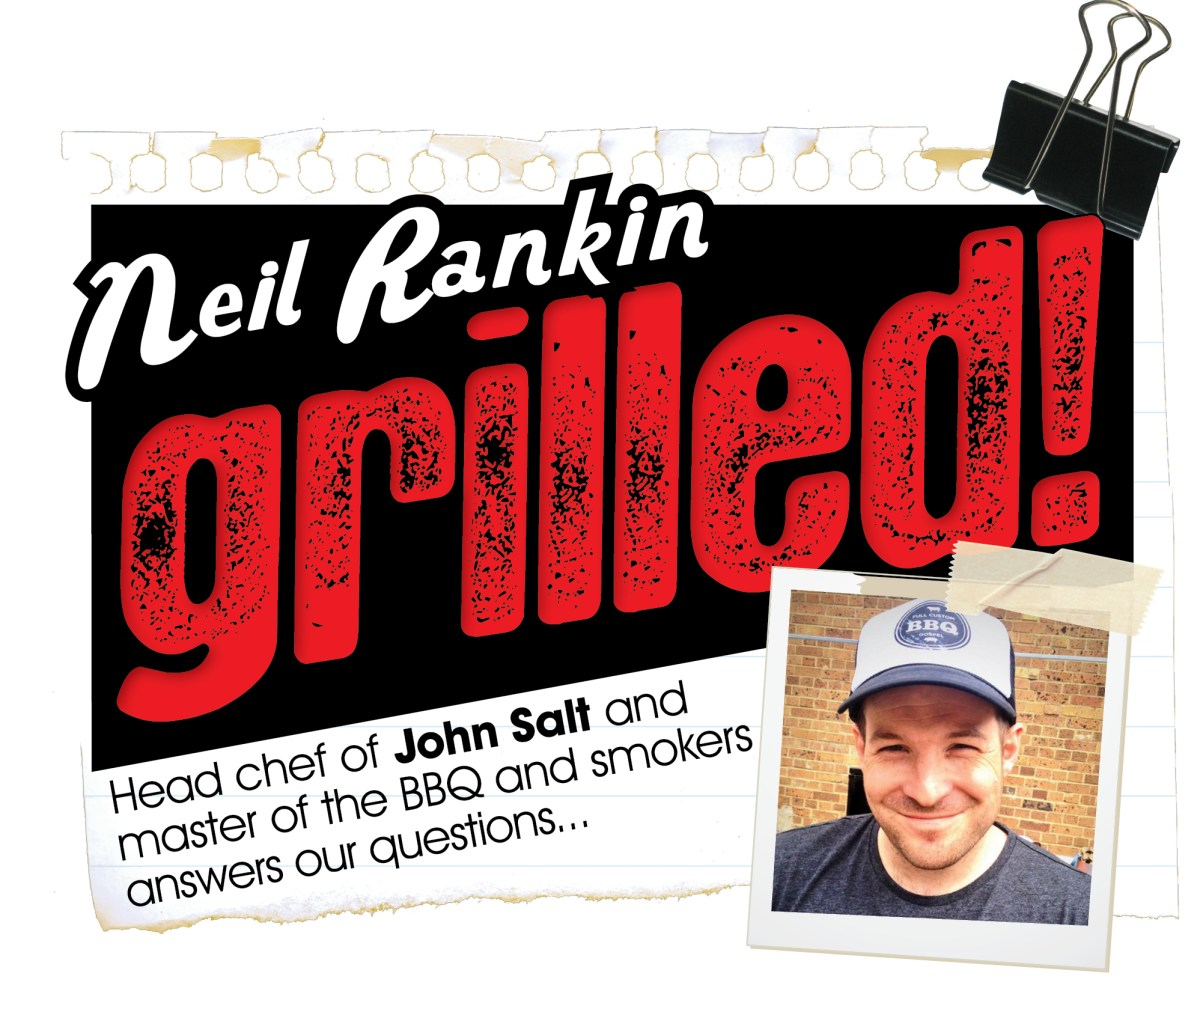 Neil Rankin, Grilled!